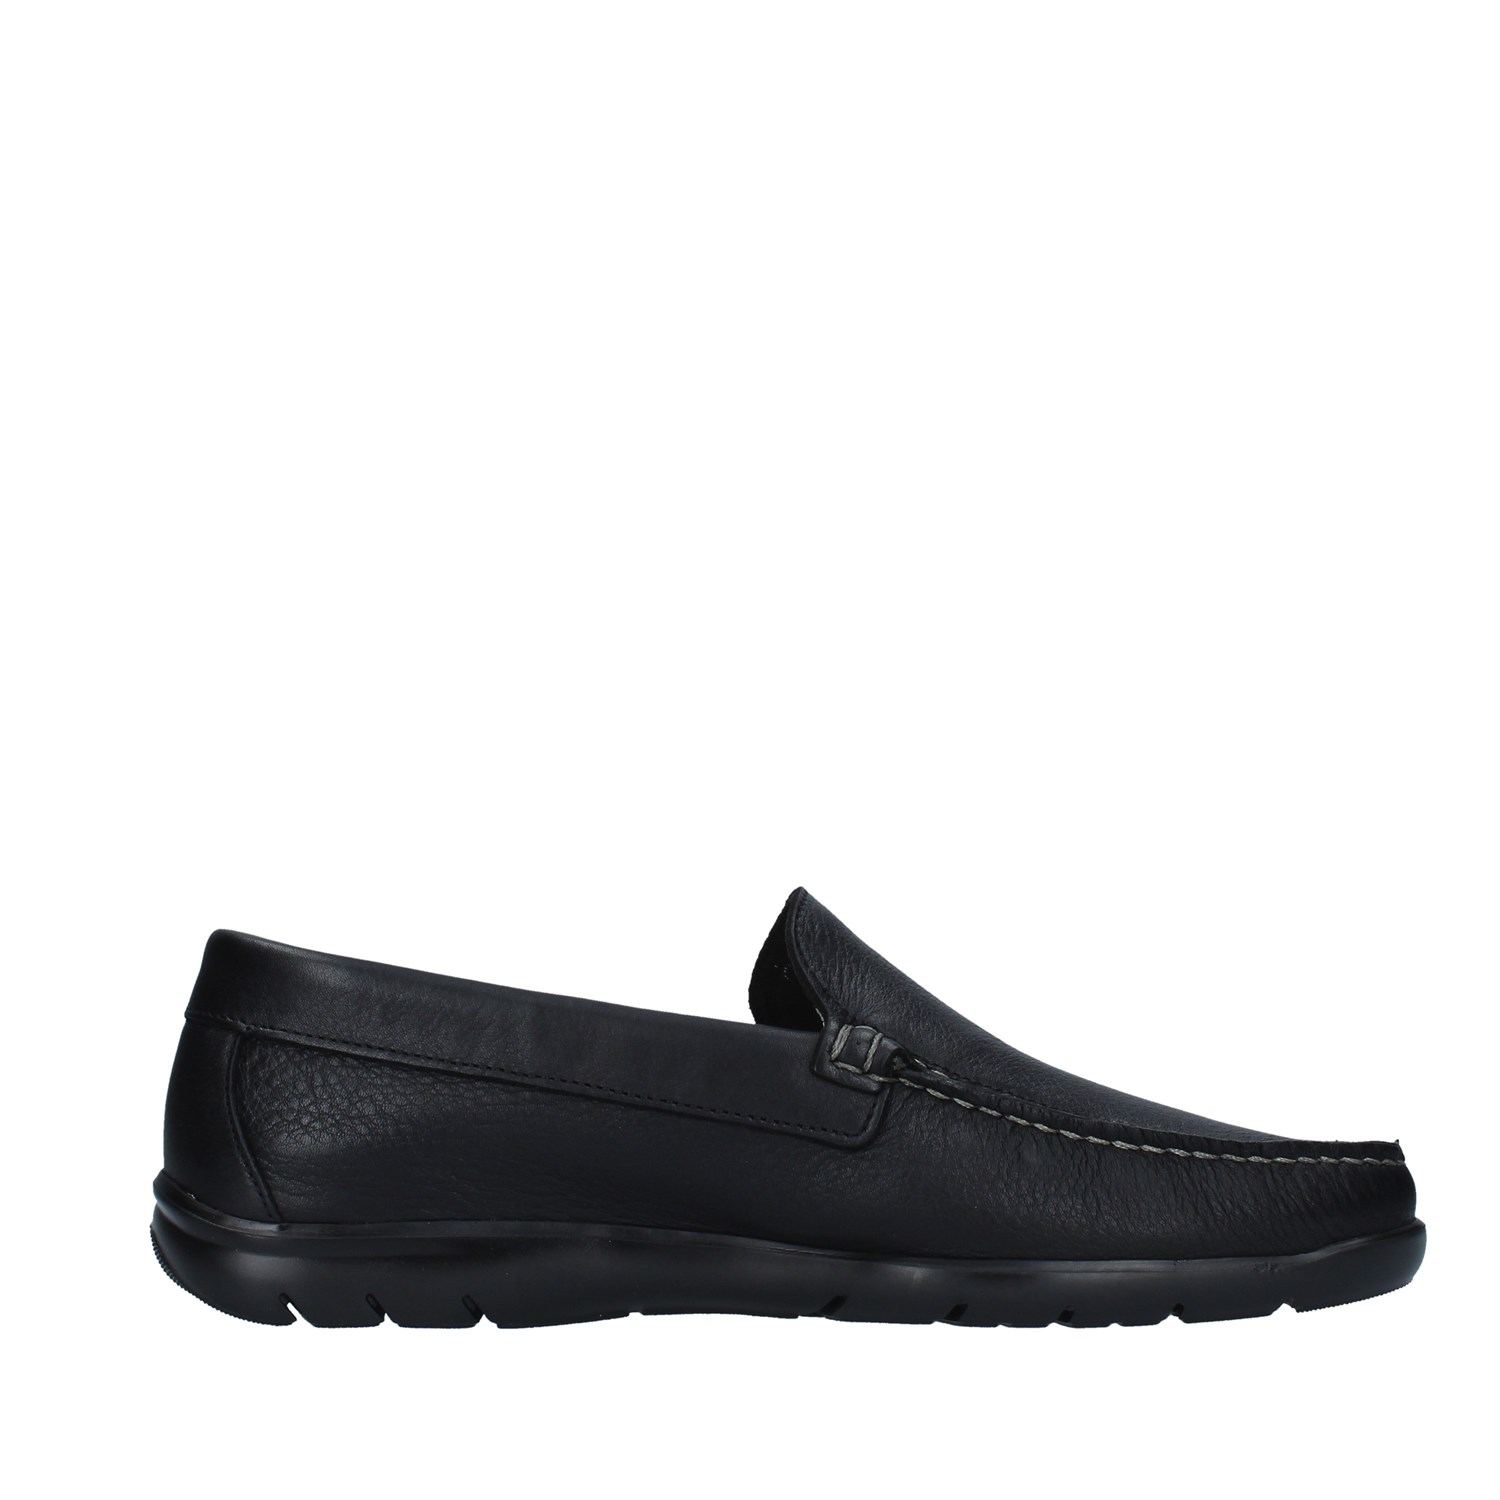 Callaghan Shoes Man Loafers BLACK 18001